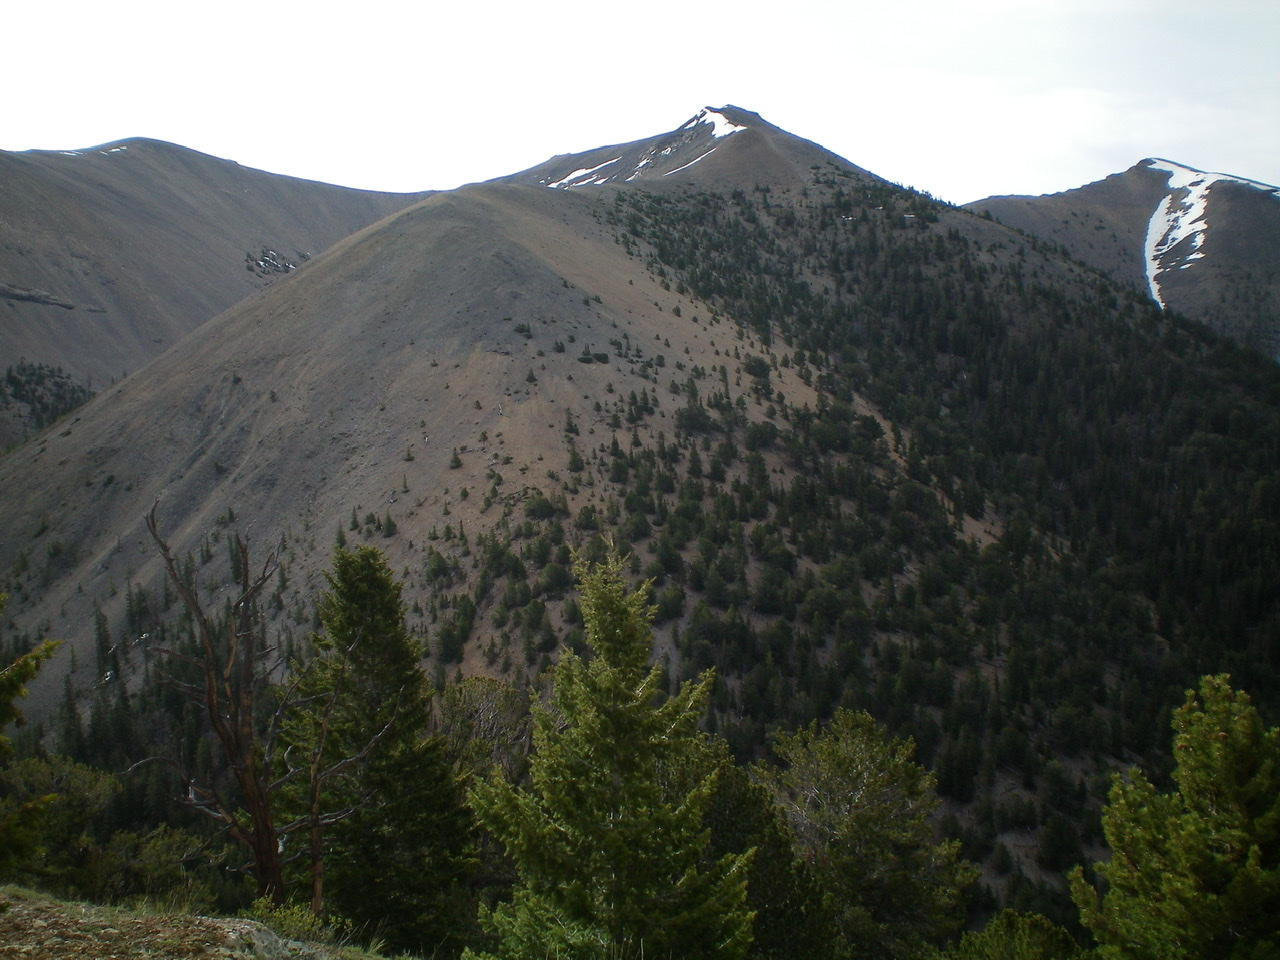 Midway Mountain (summit is just right of center) and the Northwest Ridge coming straight at the camera and descending steeply to Cedar Run Canyon. View is from a ridge on the west side of Cedar Run Canyon. Livingston Douglas Photo